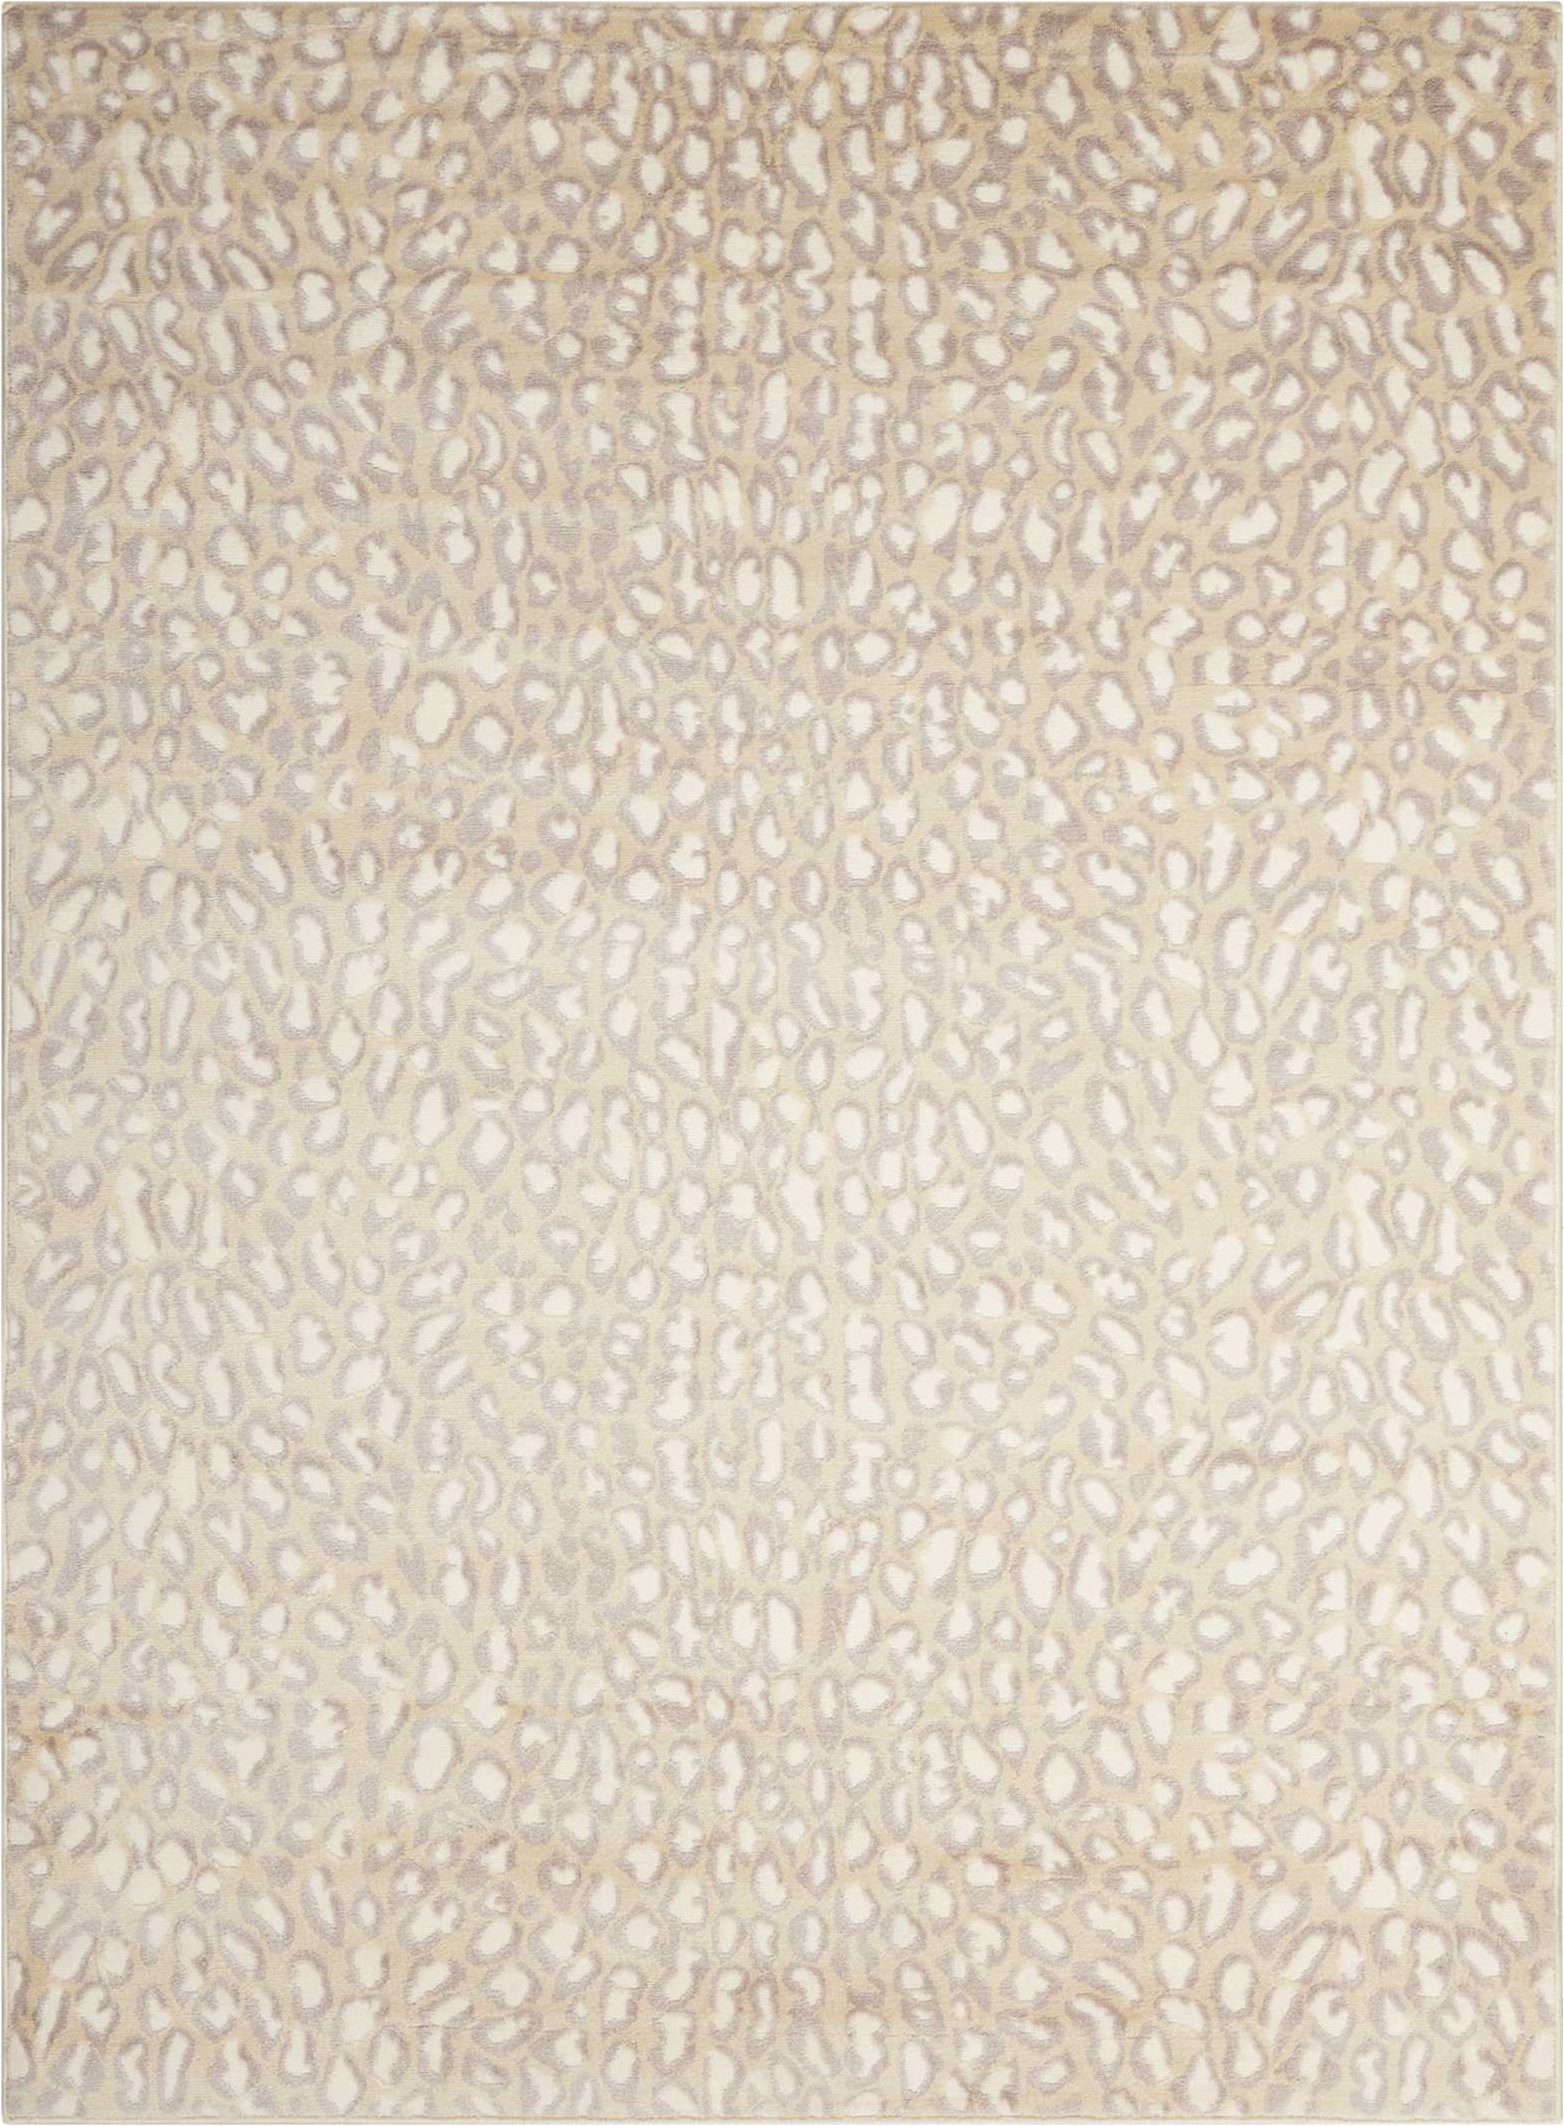 studio stu04 almond area rug by nourison